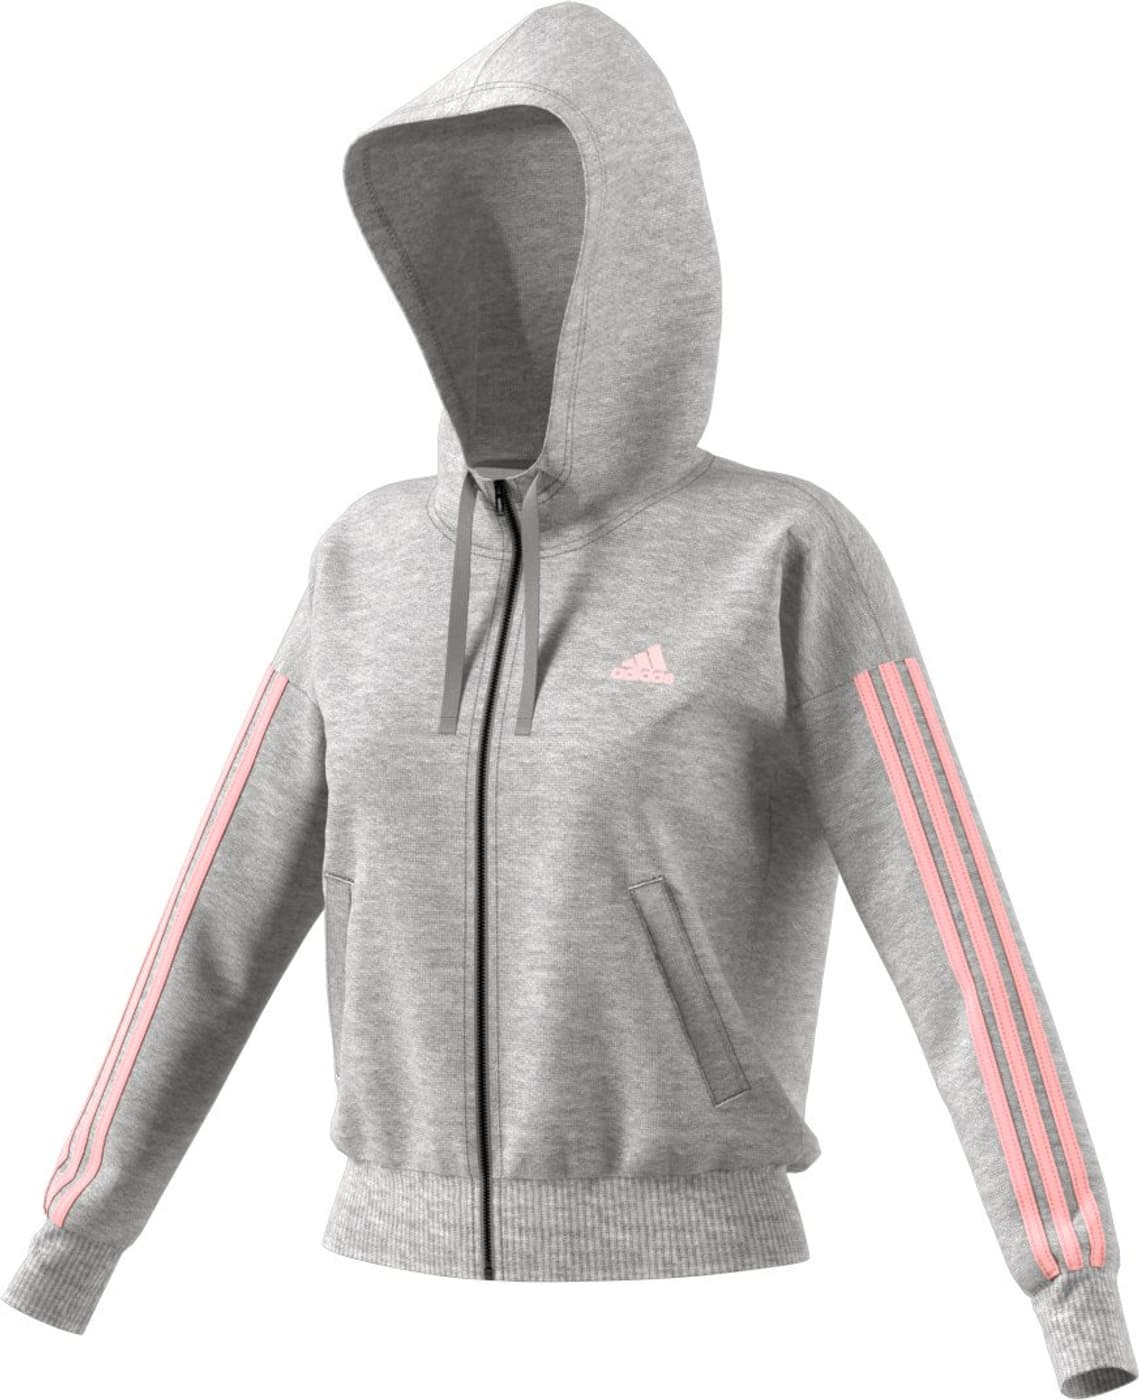 Adidas Essentials 3 Stripes Fullzip Hoodie Sweat shirt à capuche pour femme